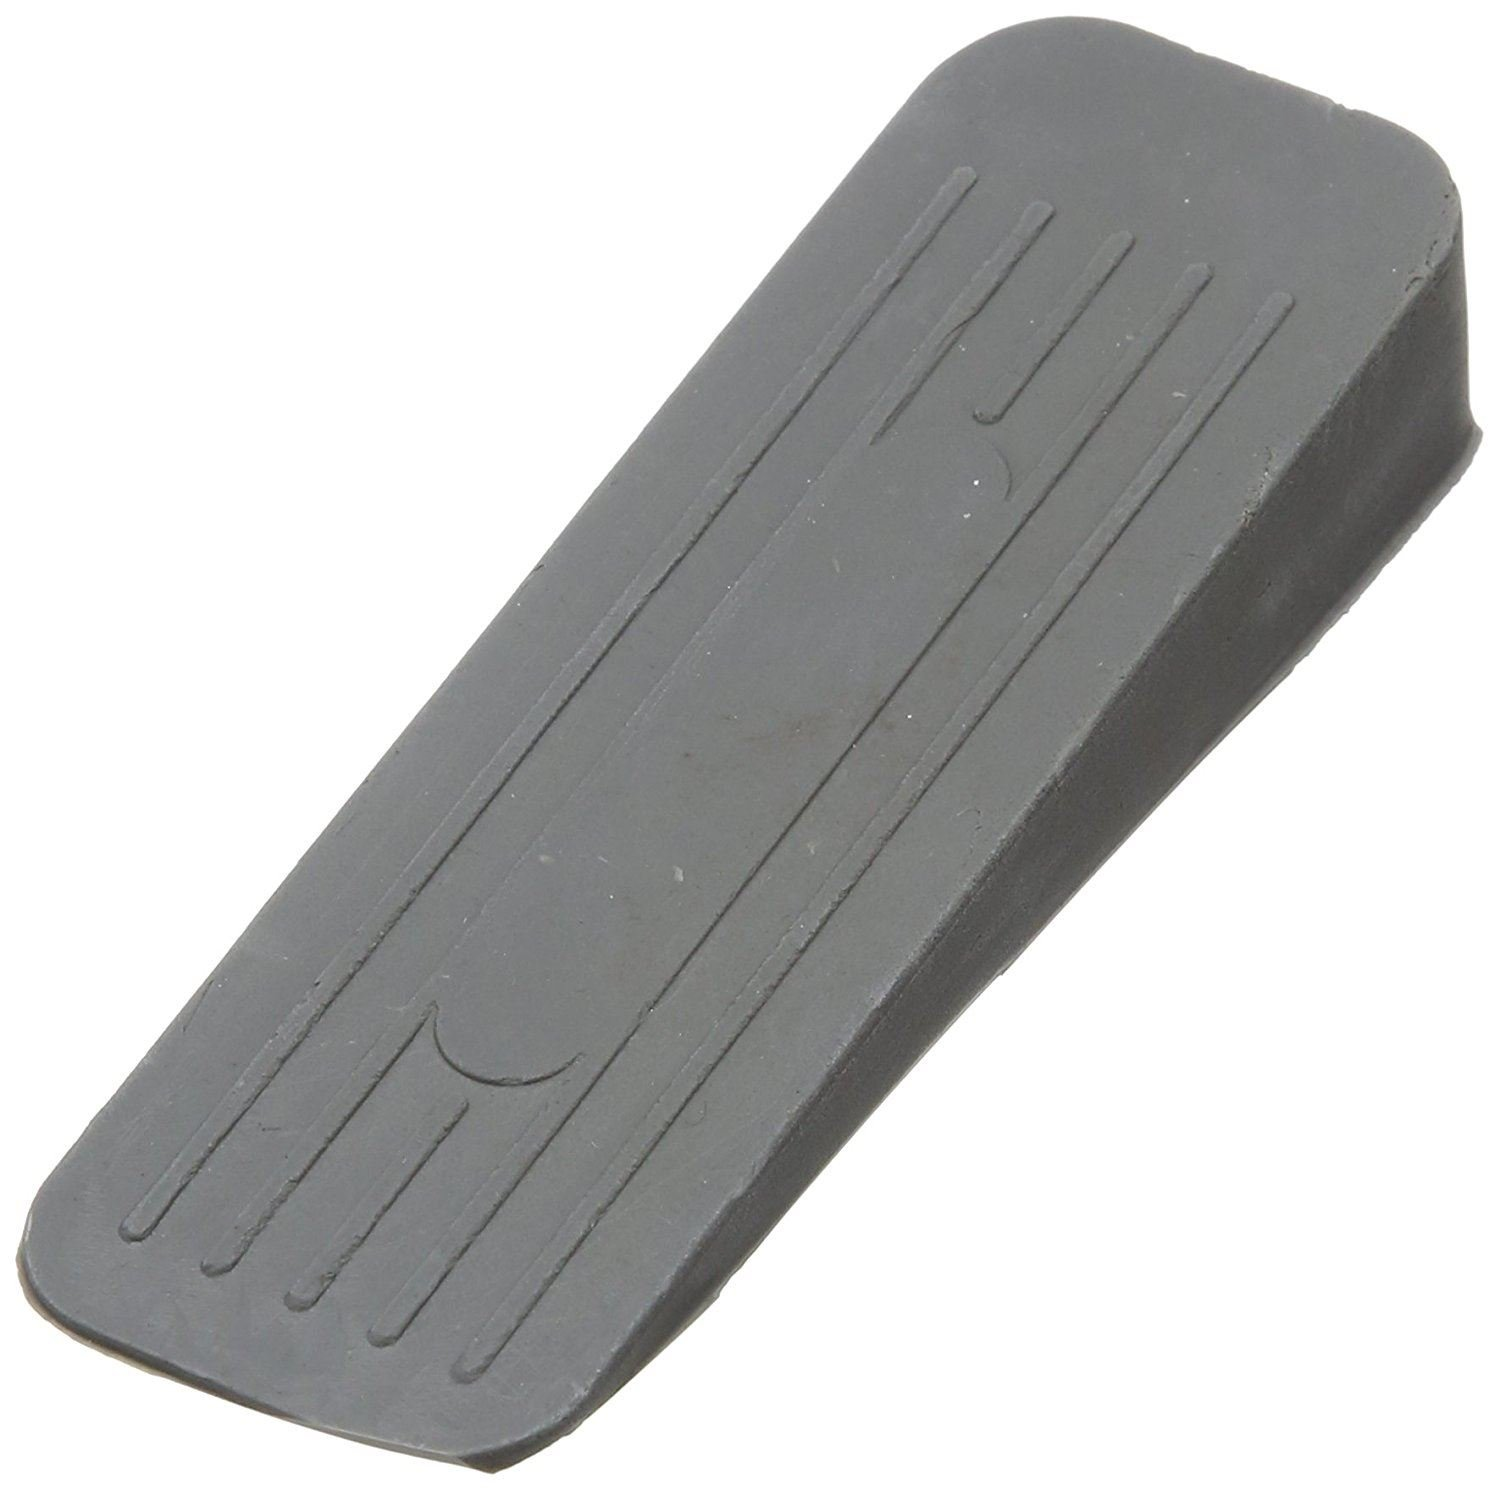 Bulk Hardware BH02509 Deluxe Heavy Duty Non-Slip Rubber Door Wedge x 2